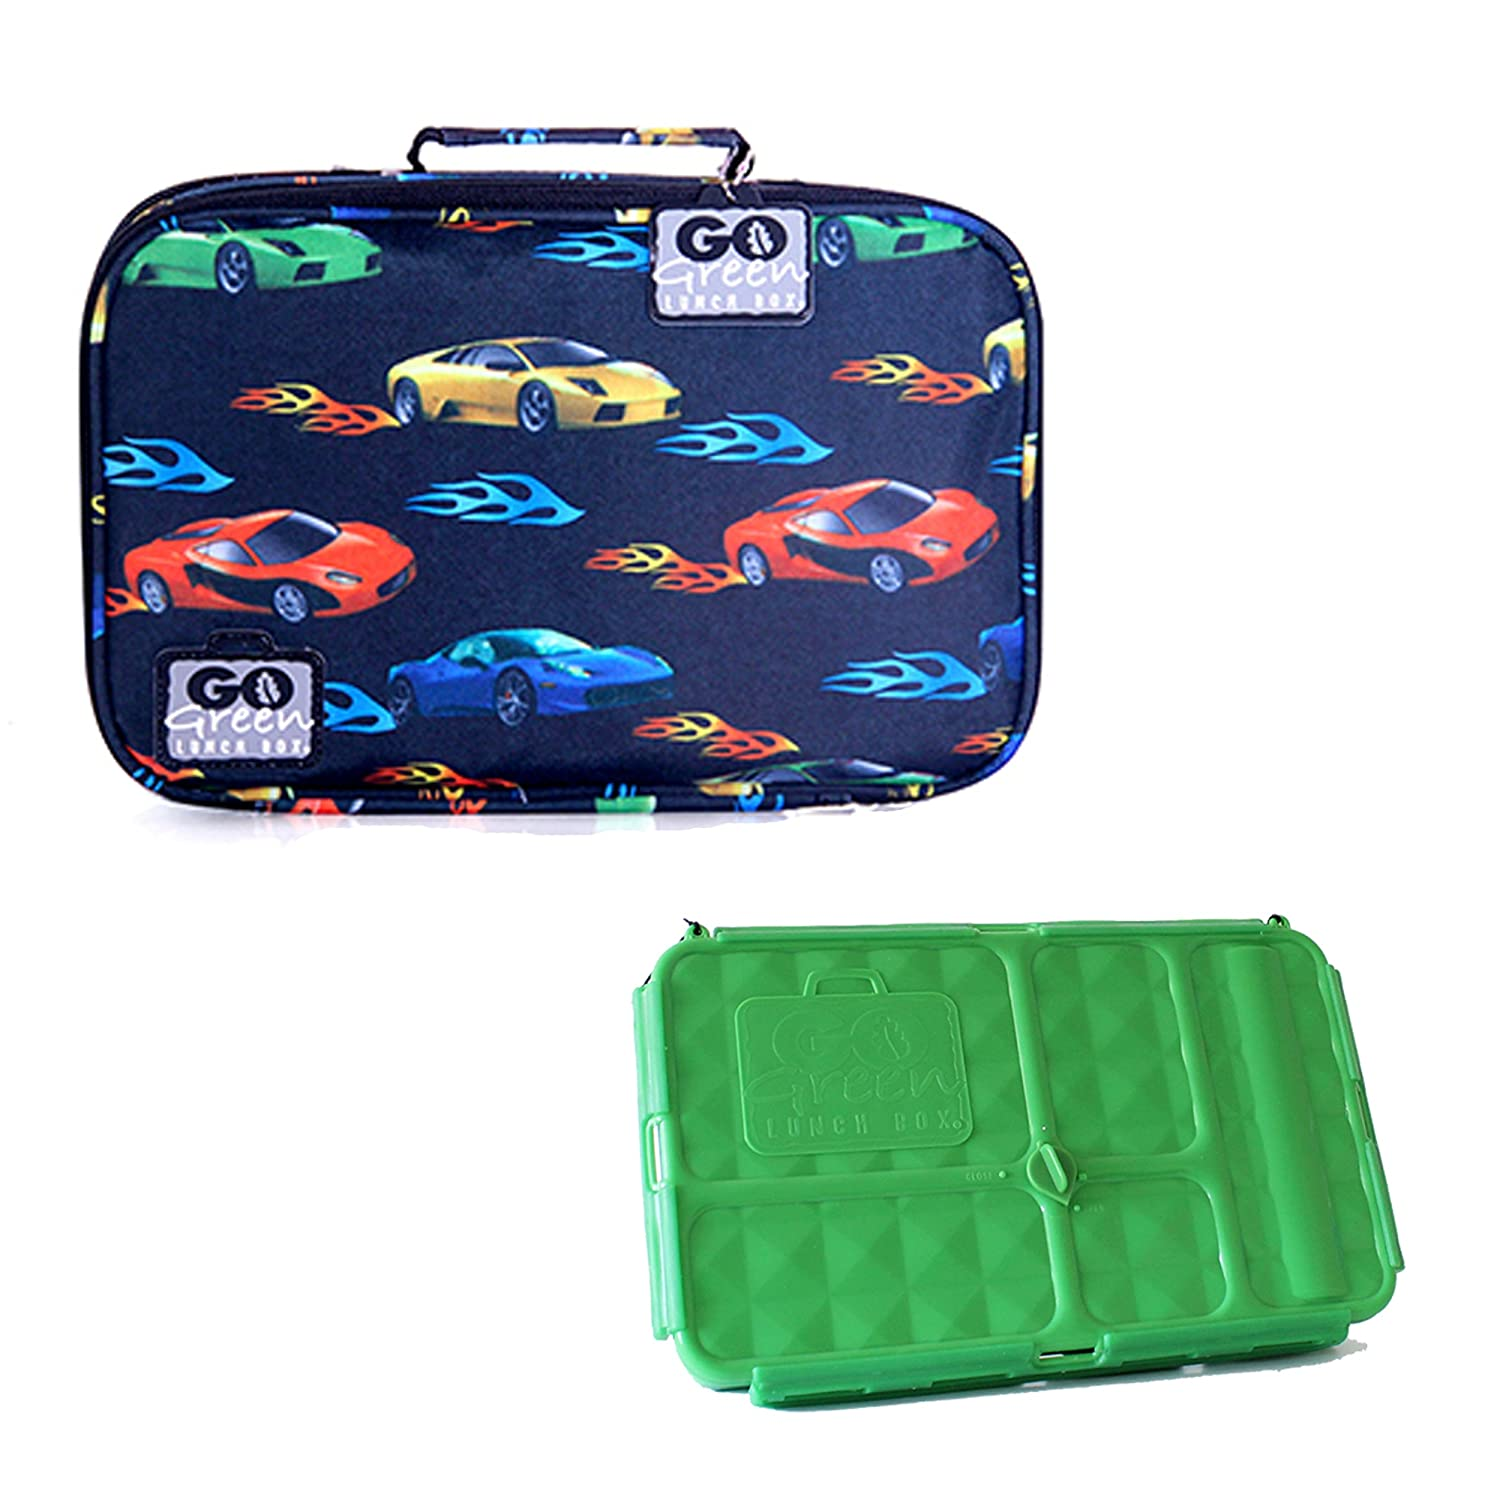 [ゴーグリーン]Go Green Lunch Box Set • 5 Compartment LeakProof Lunch Box • Insulated Carrying Bag • Beverage Bottle • [並行輸入品] B00M9WL6I2 Fast Flames Fast Flames